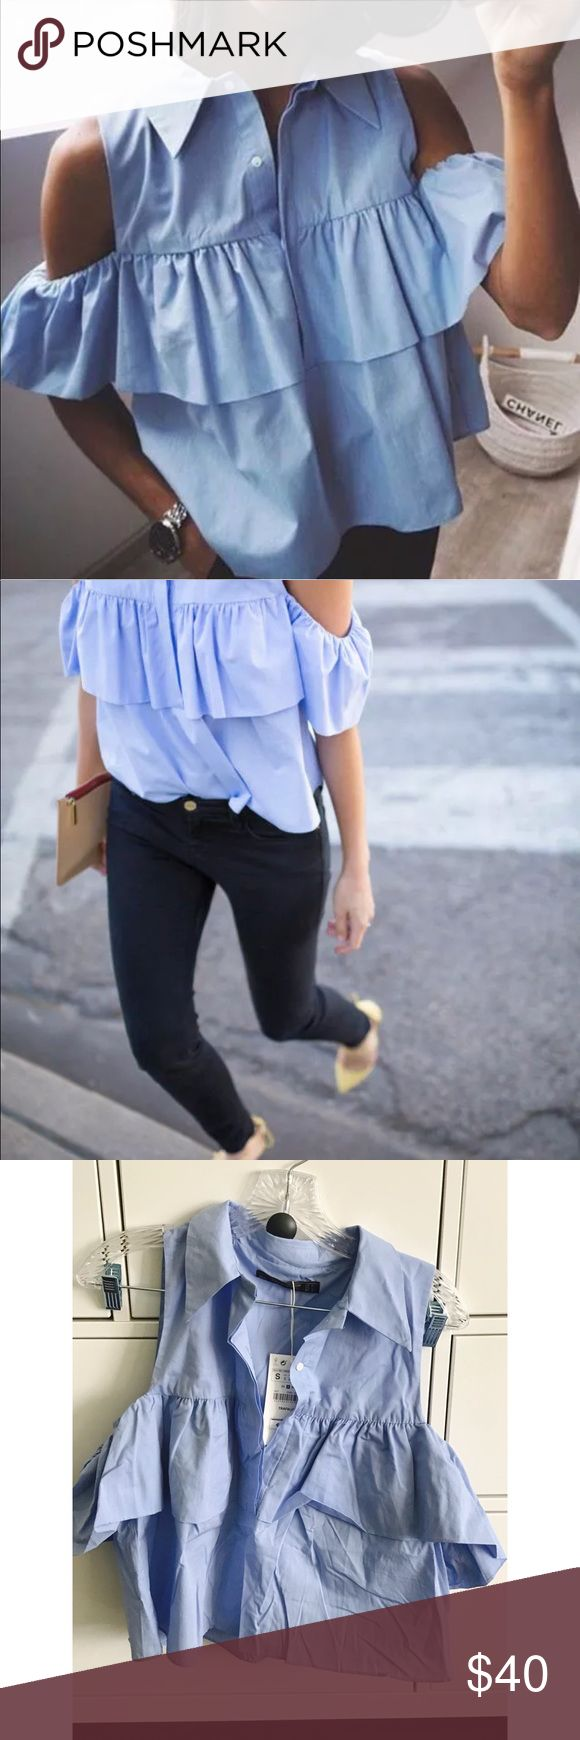 ZARA Frilled Poplin Blouse - S ZARA NEW S/S 2016 COLLECTION  FRILLED POPLIN SHIRT Flowing shirt. Lapel collar. Off-the-shoulder. Double layer. Elasticated sleeves. Zara Tops